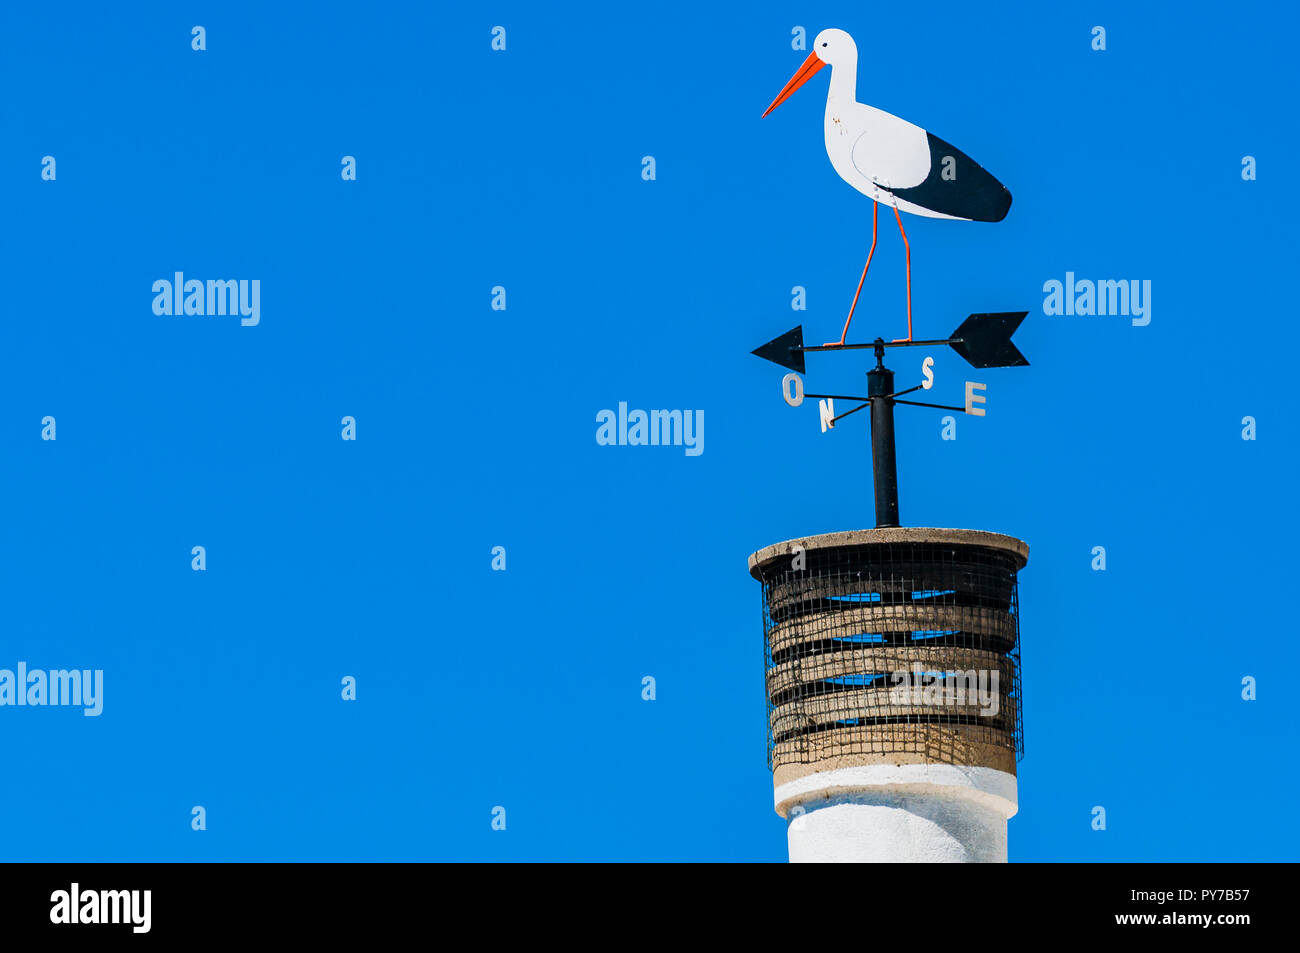 Village of El Gordo, the town with the largest stork colony in Spain. Weather vane representing a stork. El Gordo, Caceres, Extremadura, Spain, Europe - Stock Image